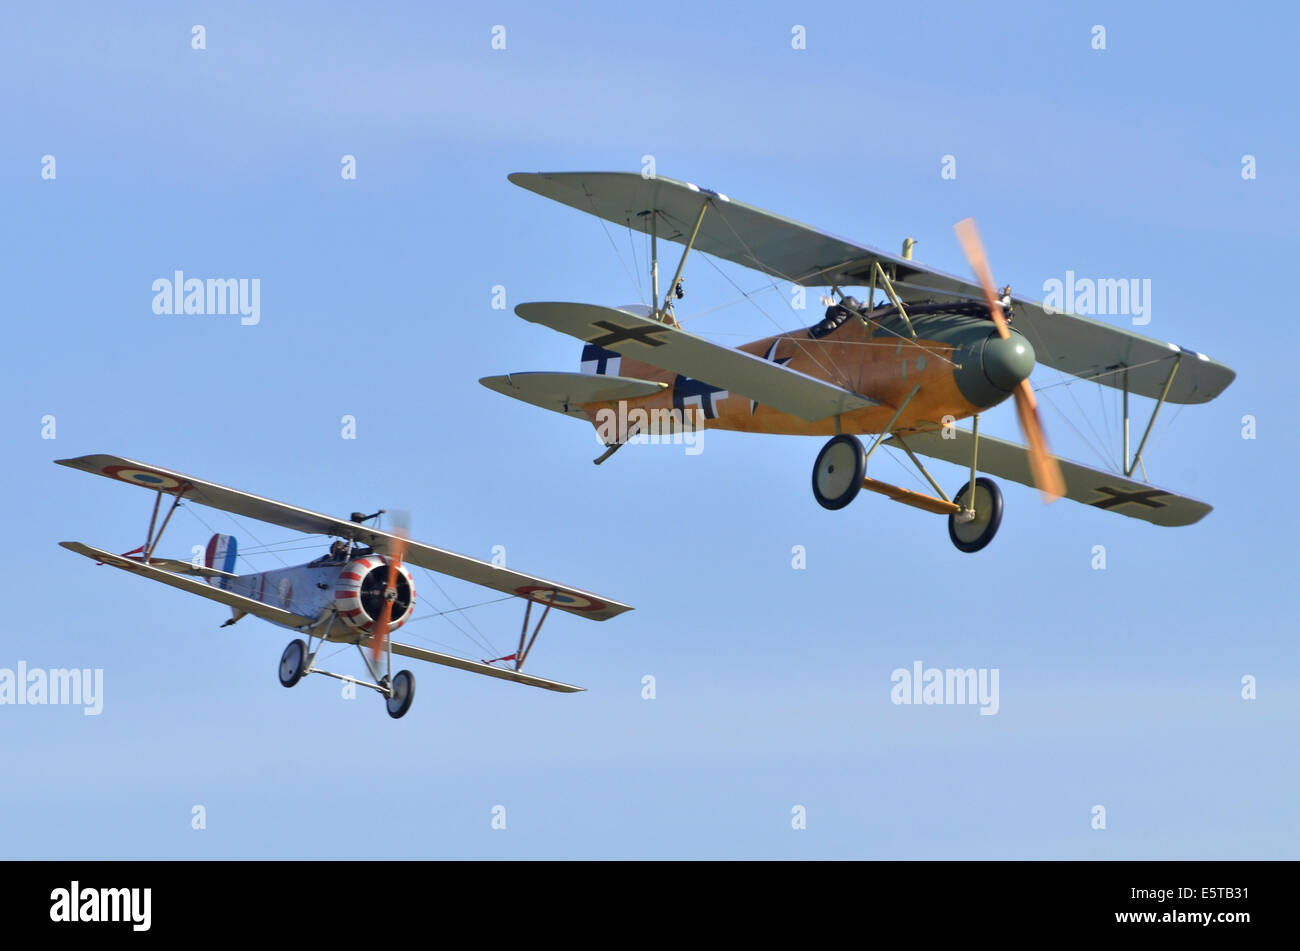 WW1 plane dogfight Nieuport 23 Scout in French markings and Albatros DV.a in German markings at Duxford Airshow - Stock Image